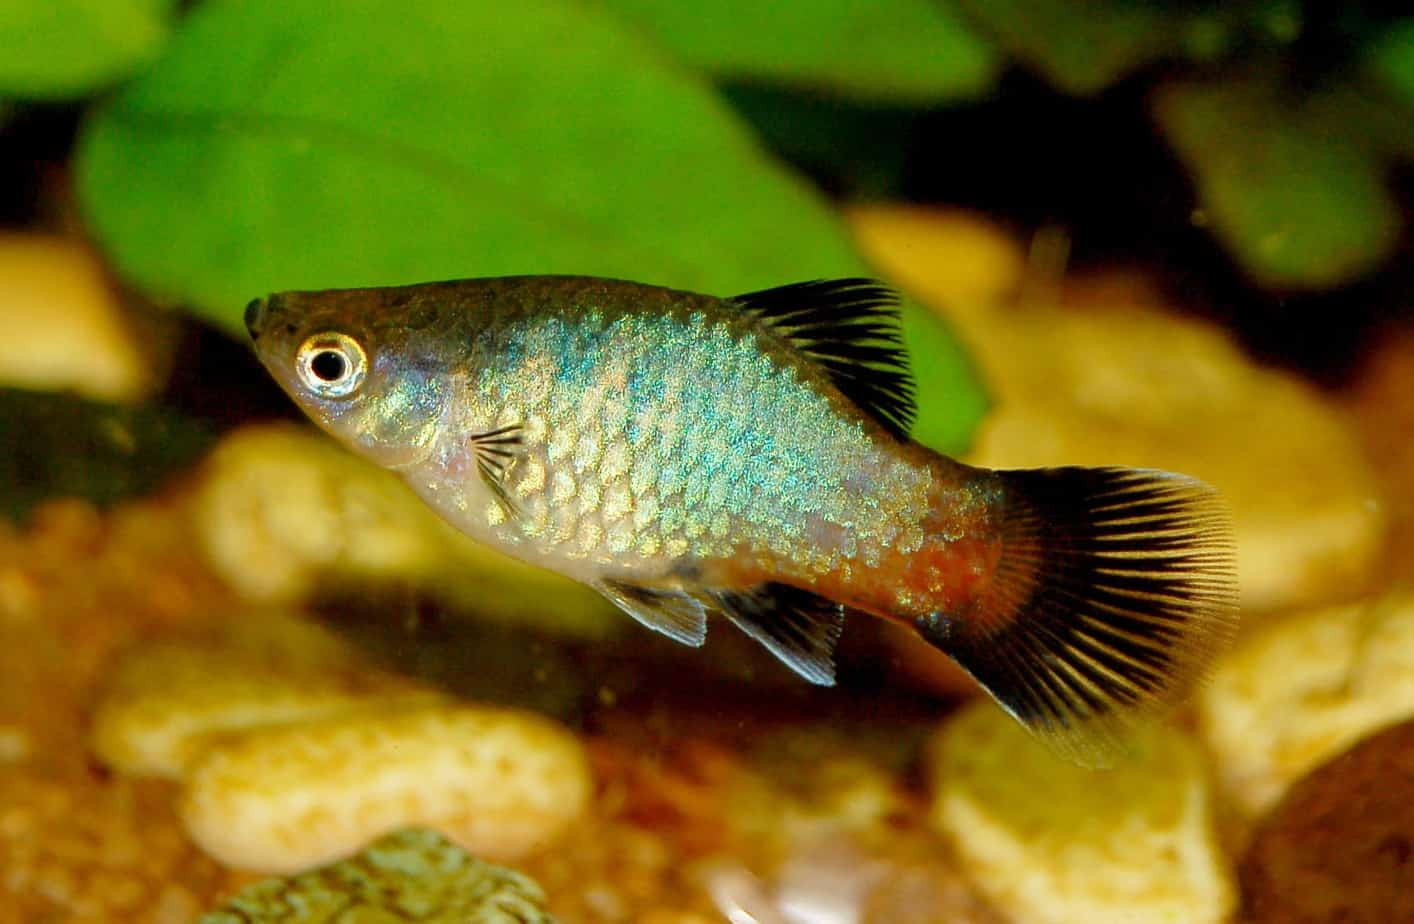 Freshwater aquarium fish lifespan - Platies